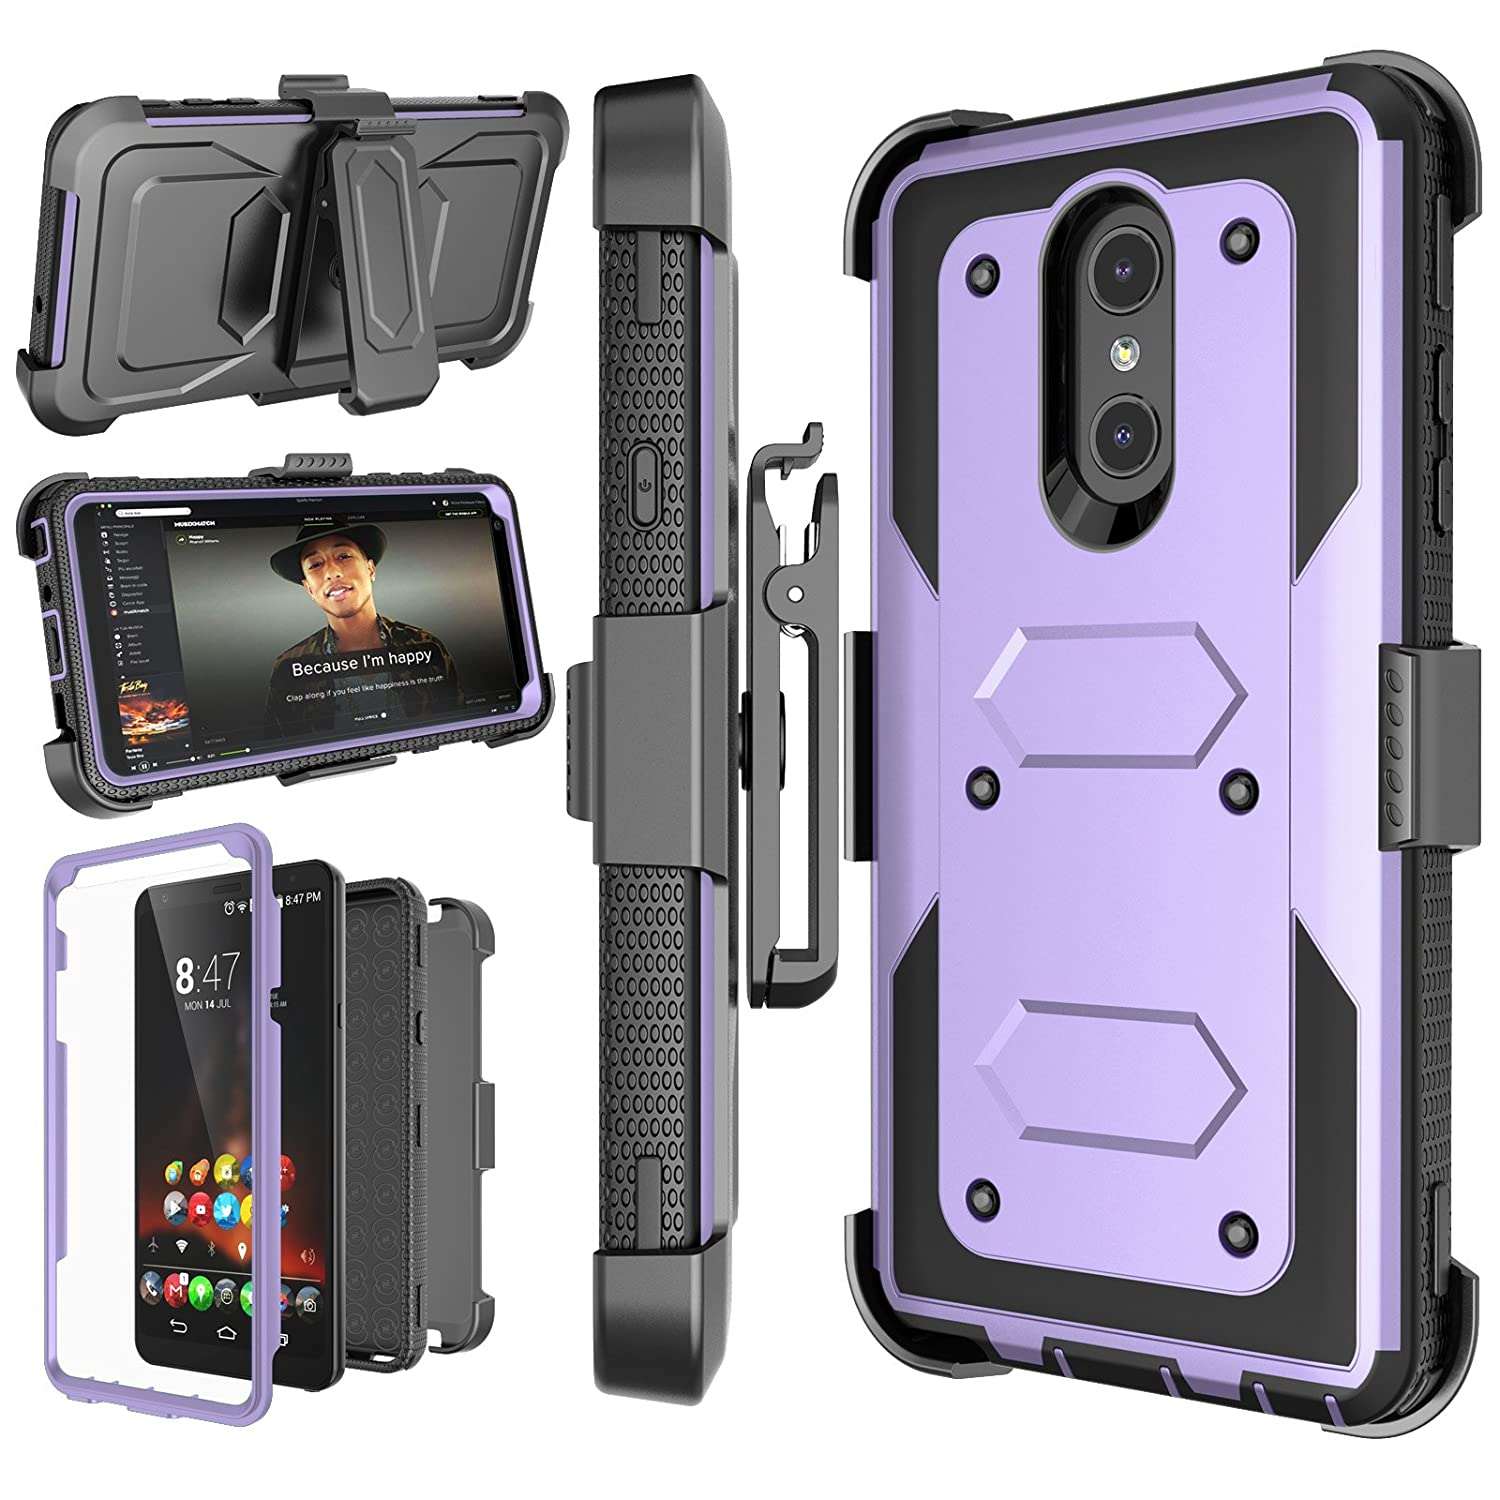 LG Stylo 4 Case, LG Q Stylus Holster Clip, Njjex [Nbeck] Shockproof Heavy Duty Built-in Screen Protector Rugged Locking Swivel Belt Clip Kickstand Hard Phone Cover For LG Styus 4/Stylo 4 Plus [Purple]